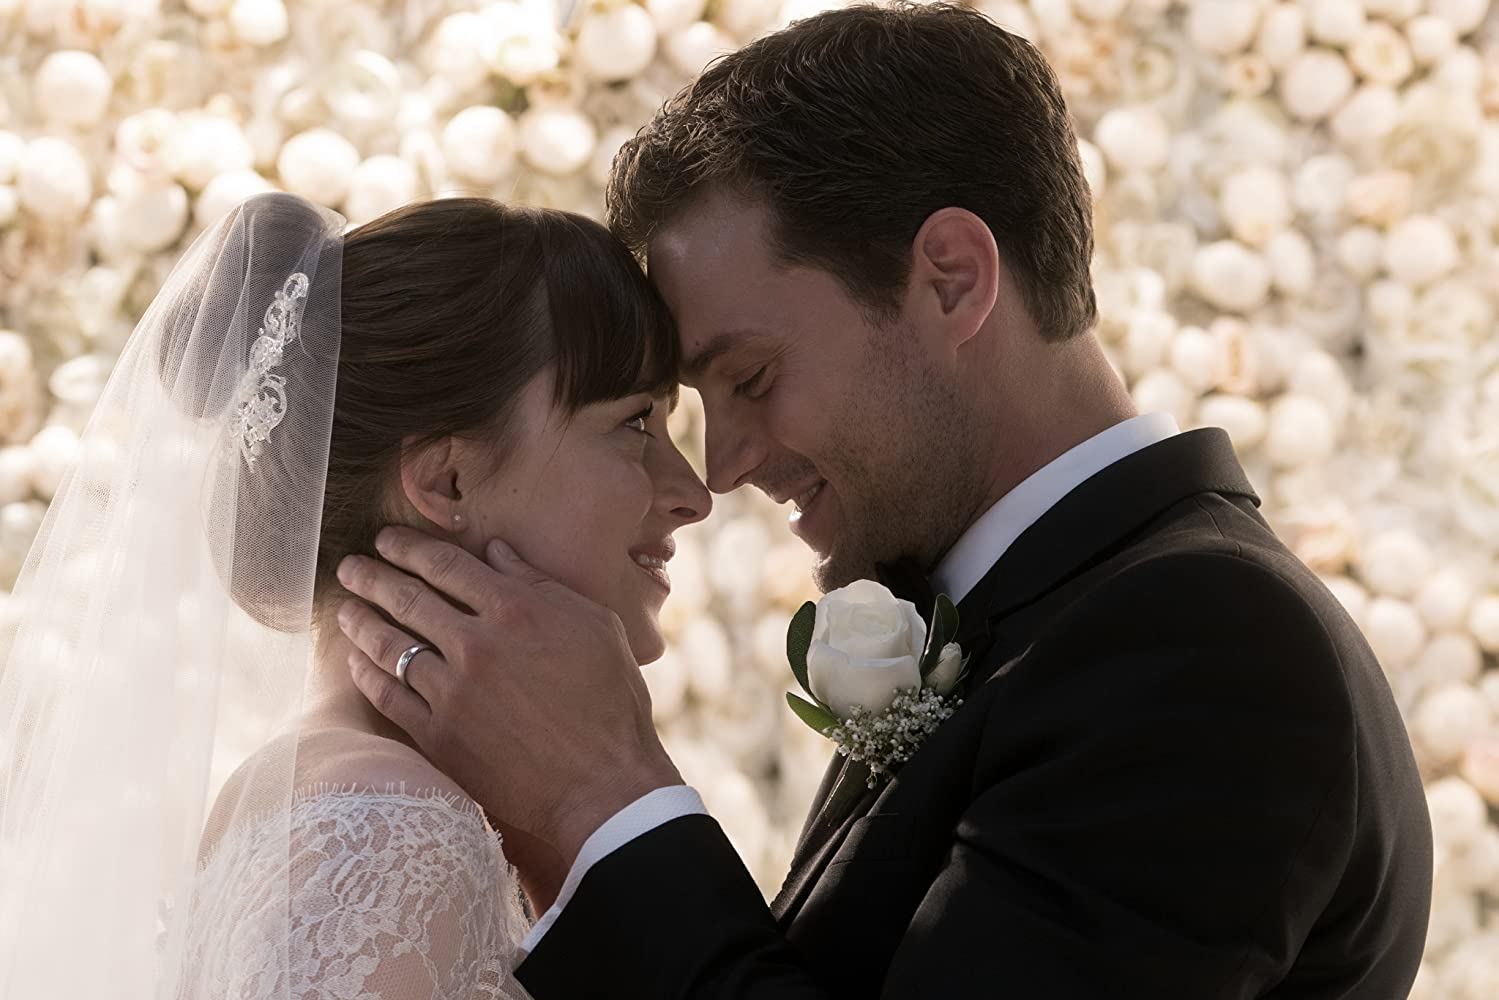 Dakota Johnson and Jamie Dornan in Fifty Shades Freed (2018)